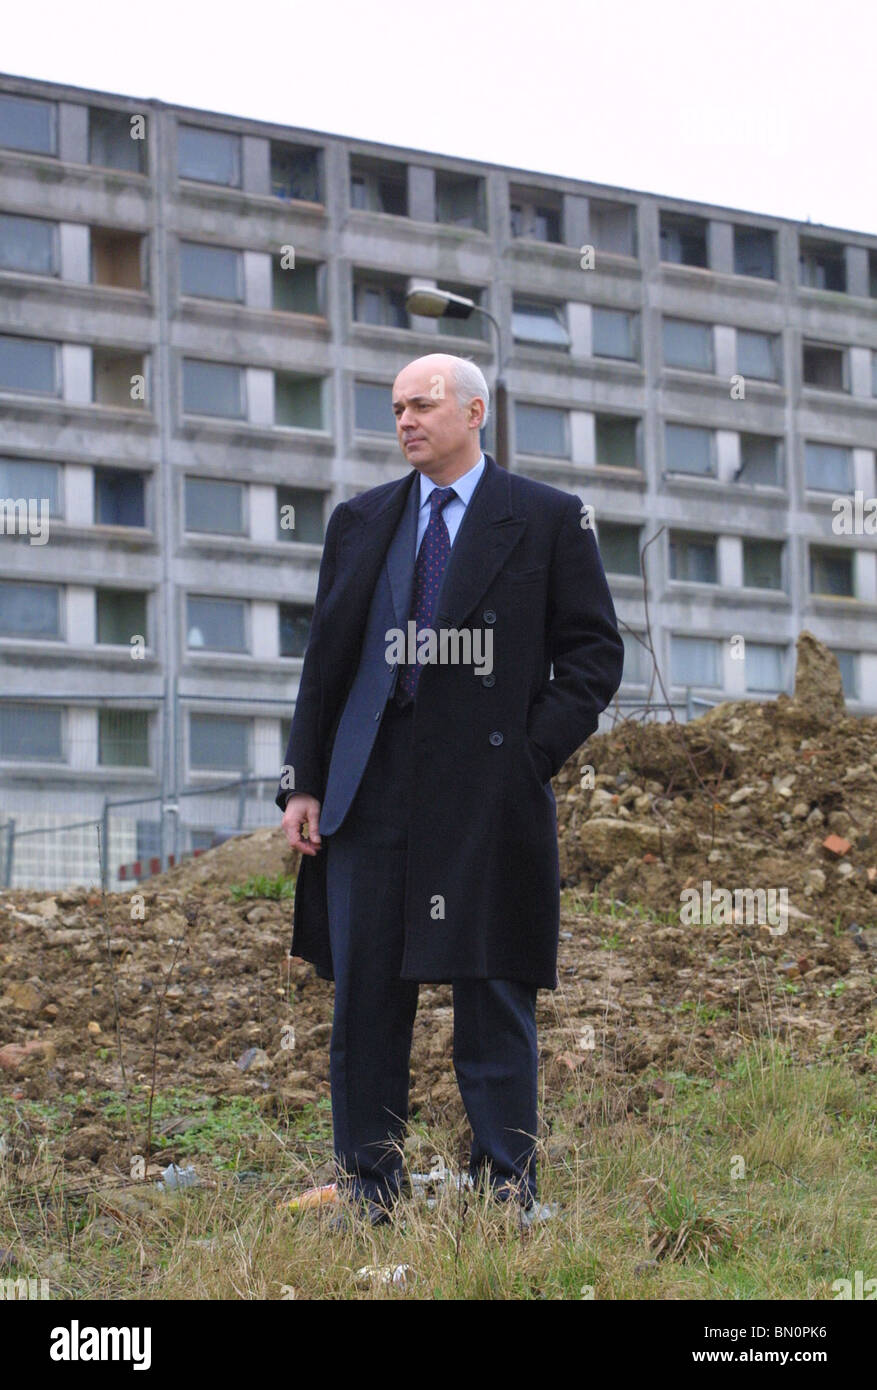 El Honorable Iain Duncan Smith MP por tower block Imagen De Stock